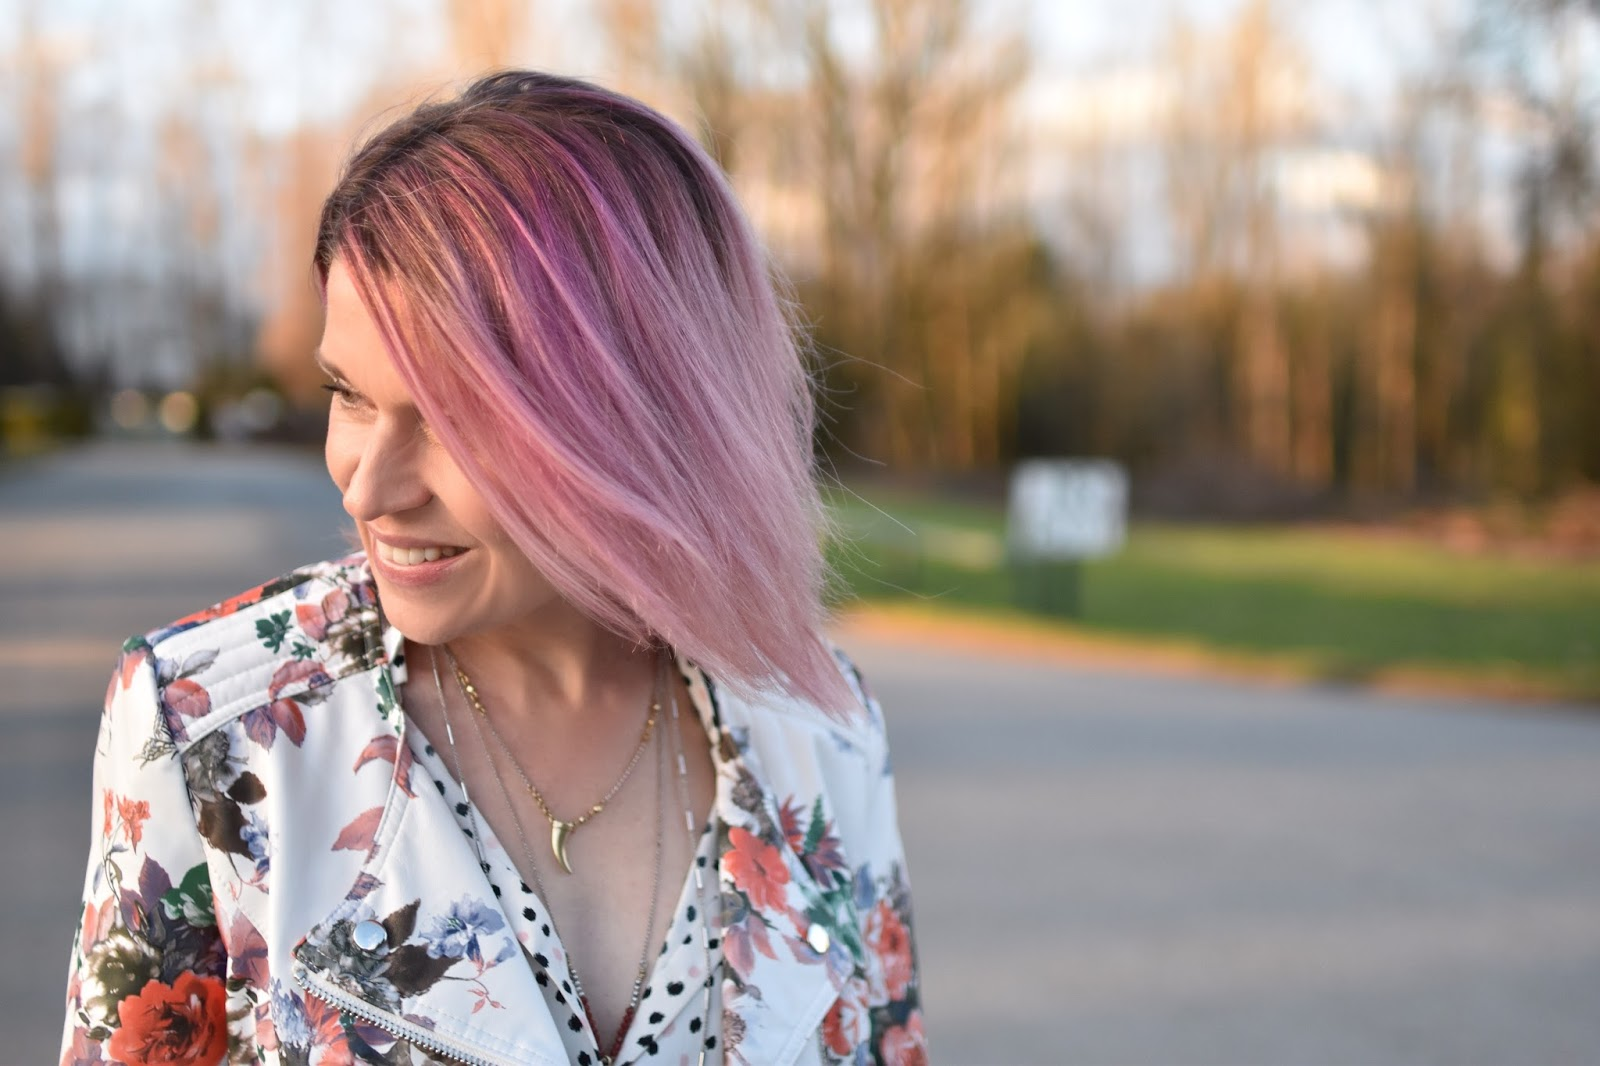 Monika Faulkner outfit inspiration - polka-dotted blouse, floral moto jacket, pink hair